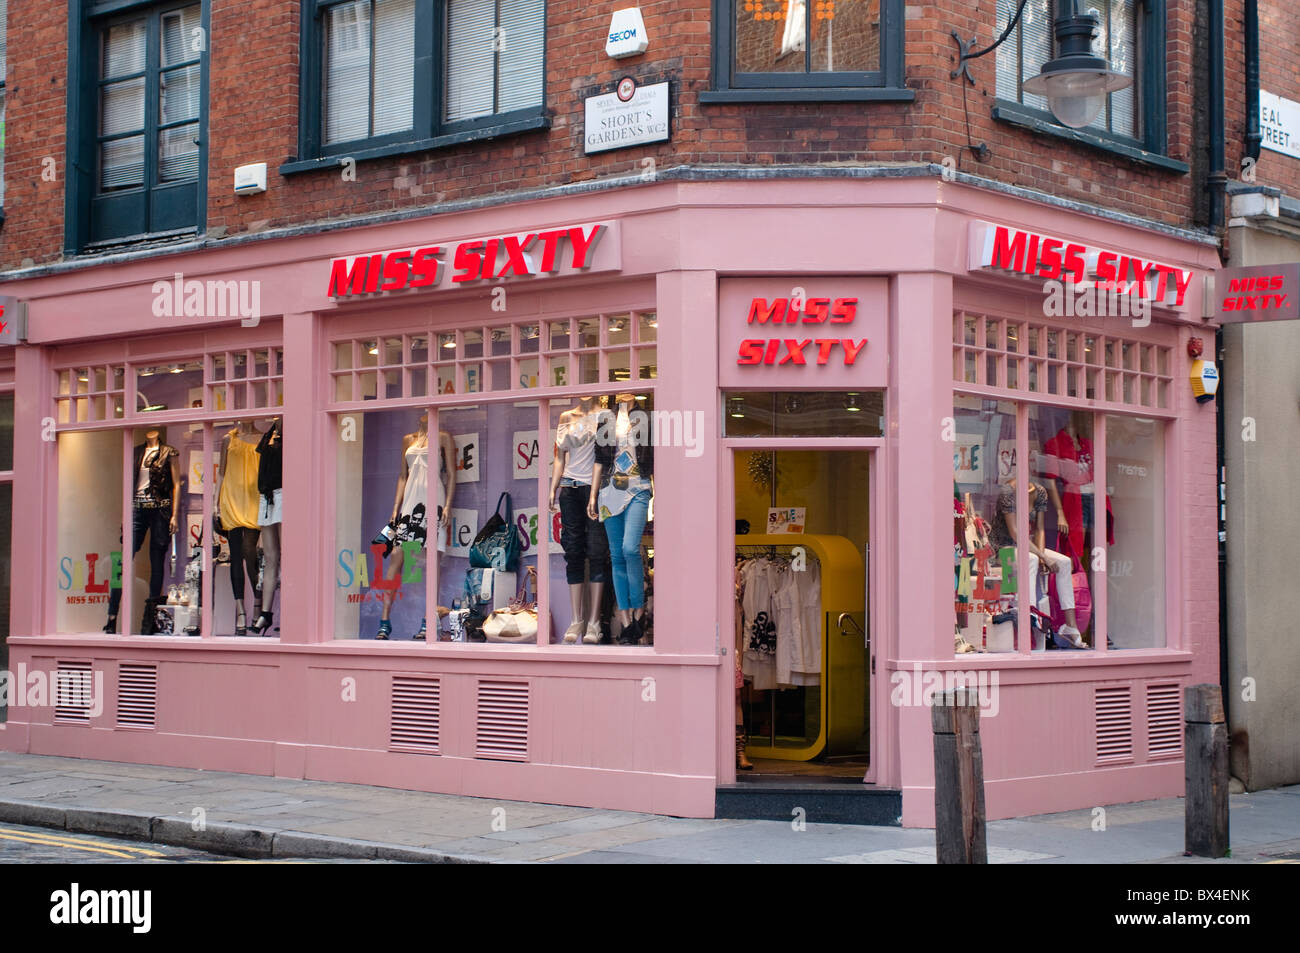 London is host to a wide range of fashion stores, from global megabrands like Dior and Uniqlo, to independent multi-brand boutiques like Dover Street Market and Oi Polloi.